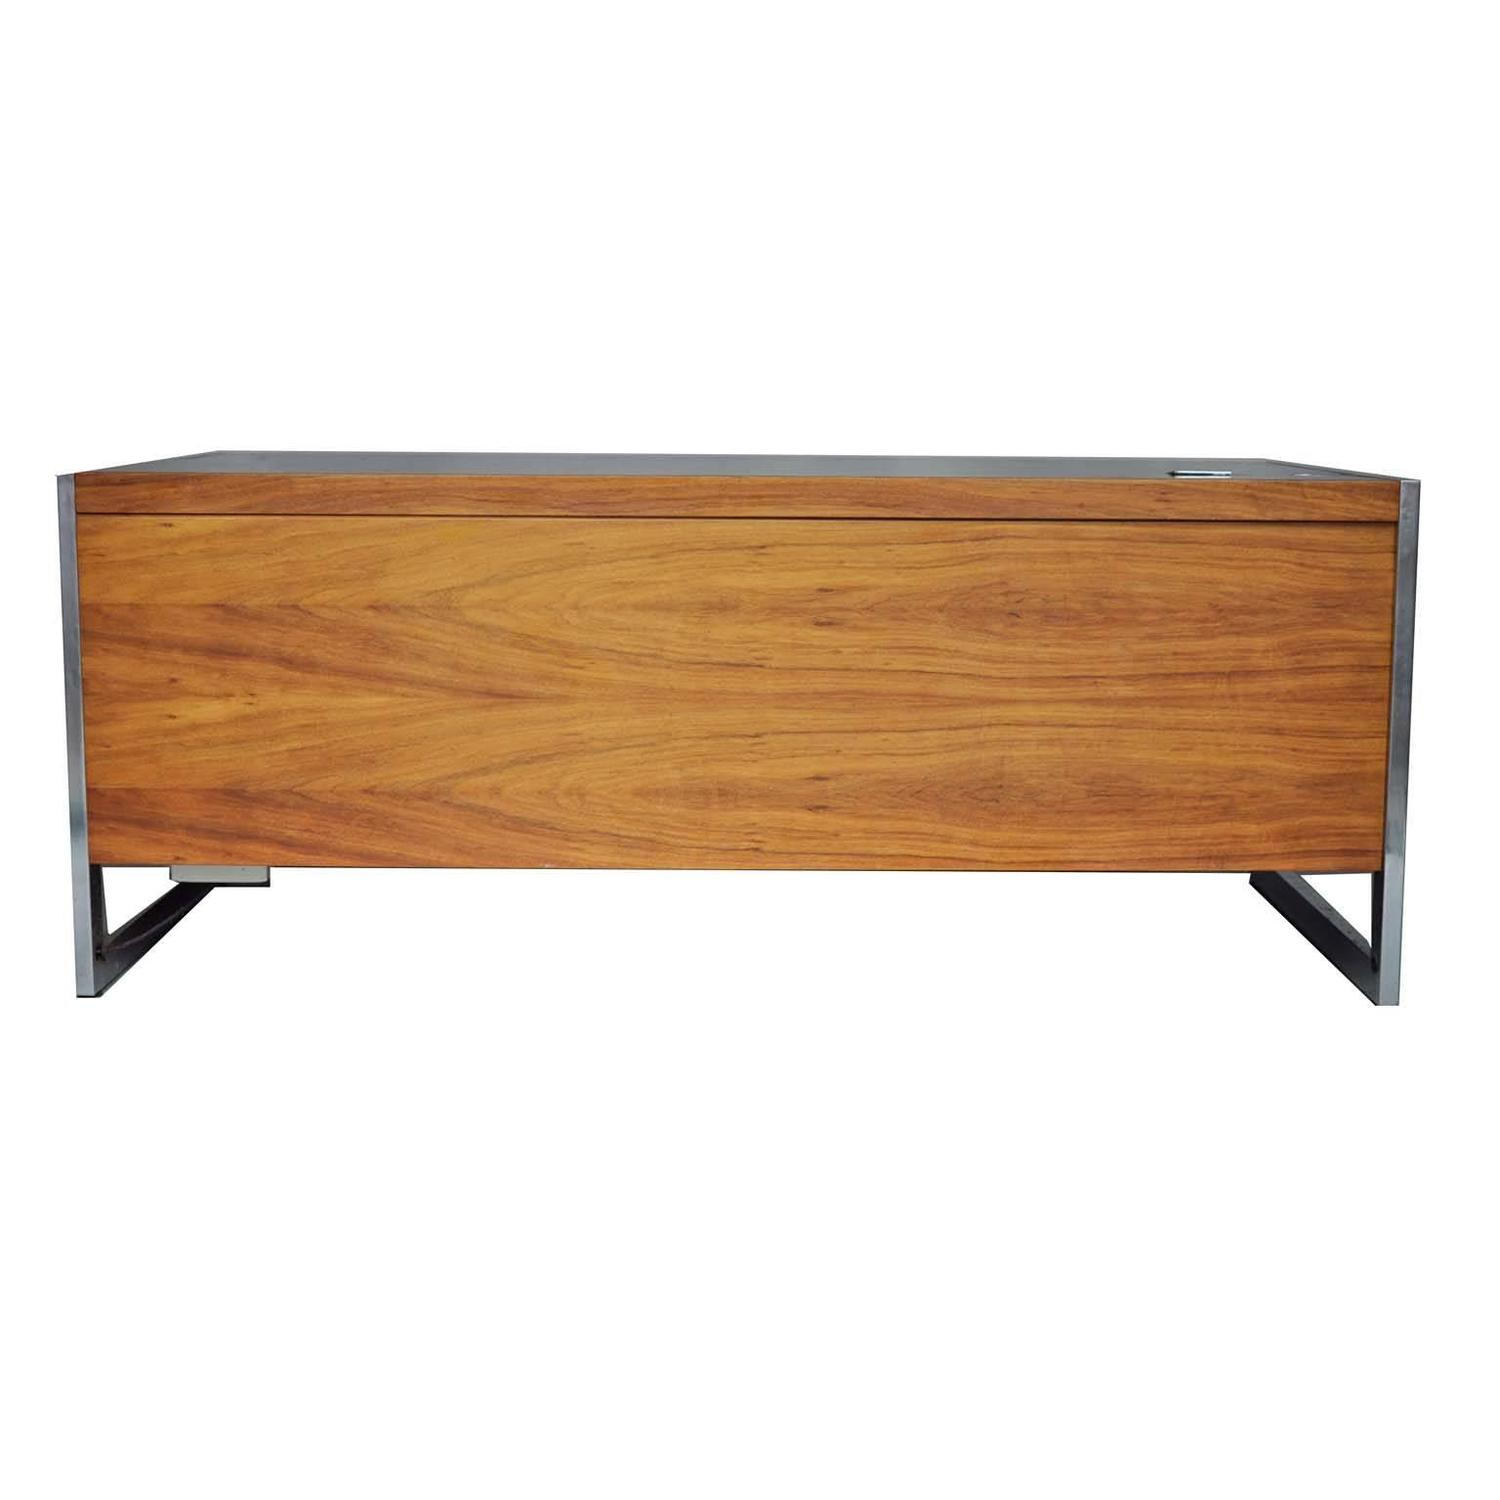 #884C28 Rosewood Executive Desk With Metal Base For Sale At 1stdibs with 1500x1500 px of Highly Rated Executive Writing Desk 15001500 picture/photo @ avoidforclosure.info